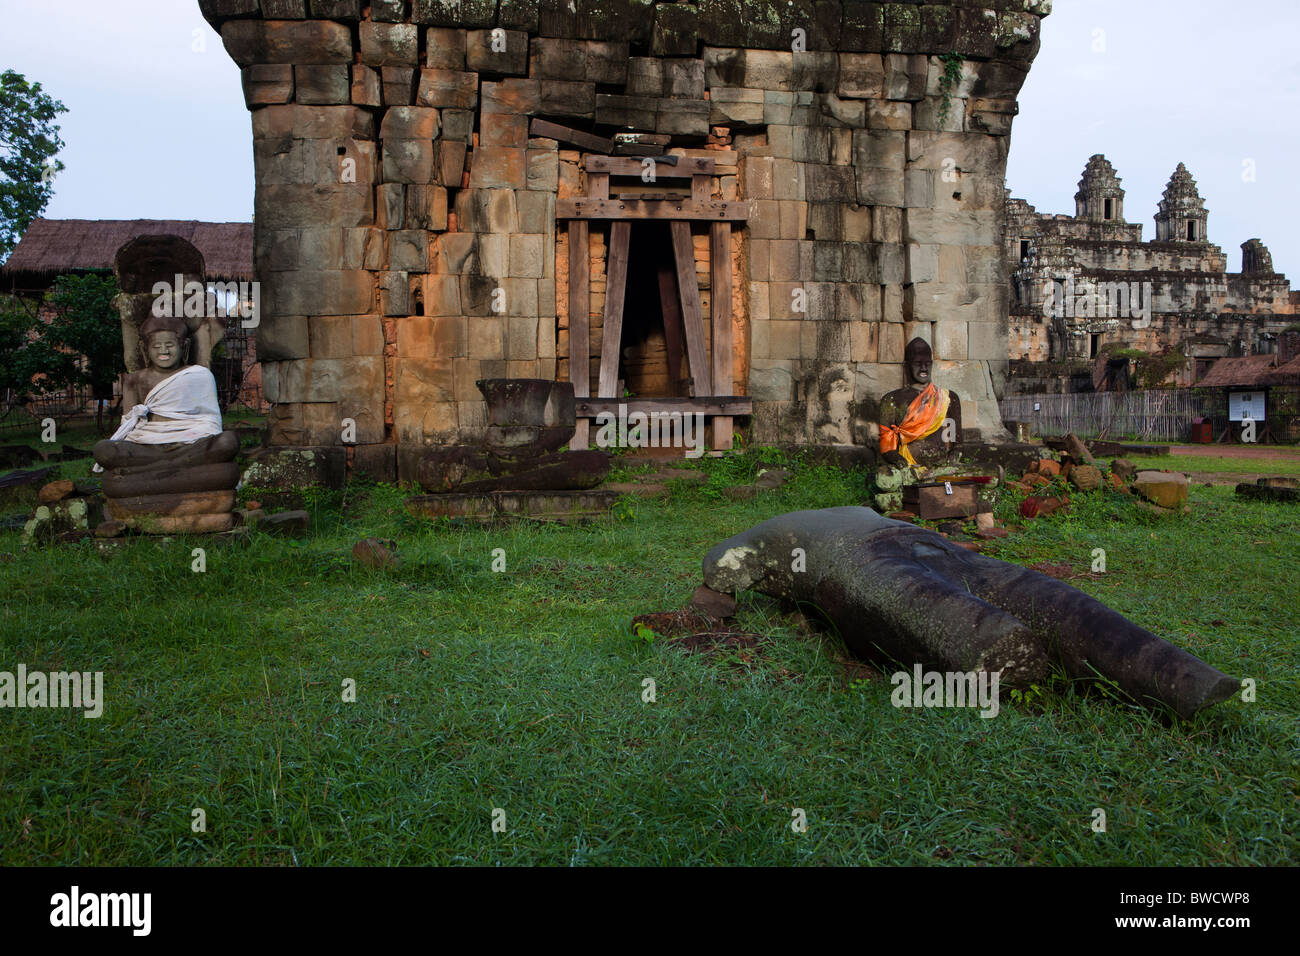 Phnom Bakheng dating from the late 9th and early 10th centuries, Angkor, UNESCO World Heritage Site, Cambodia, Indochina, - Stock Image